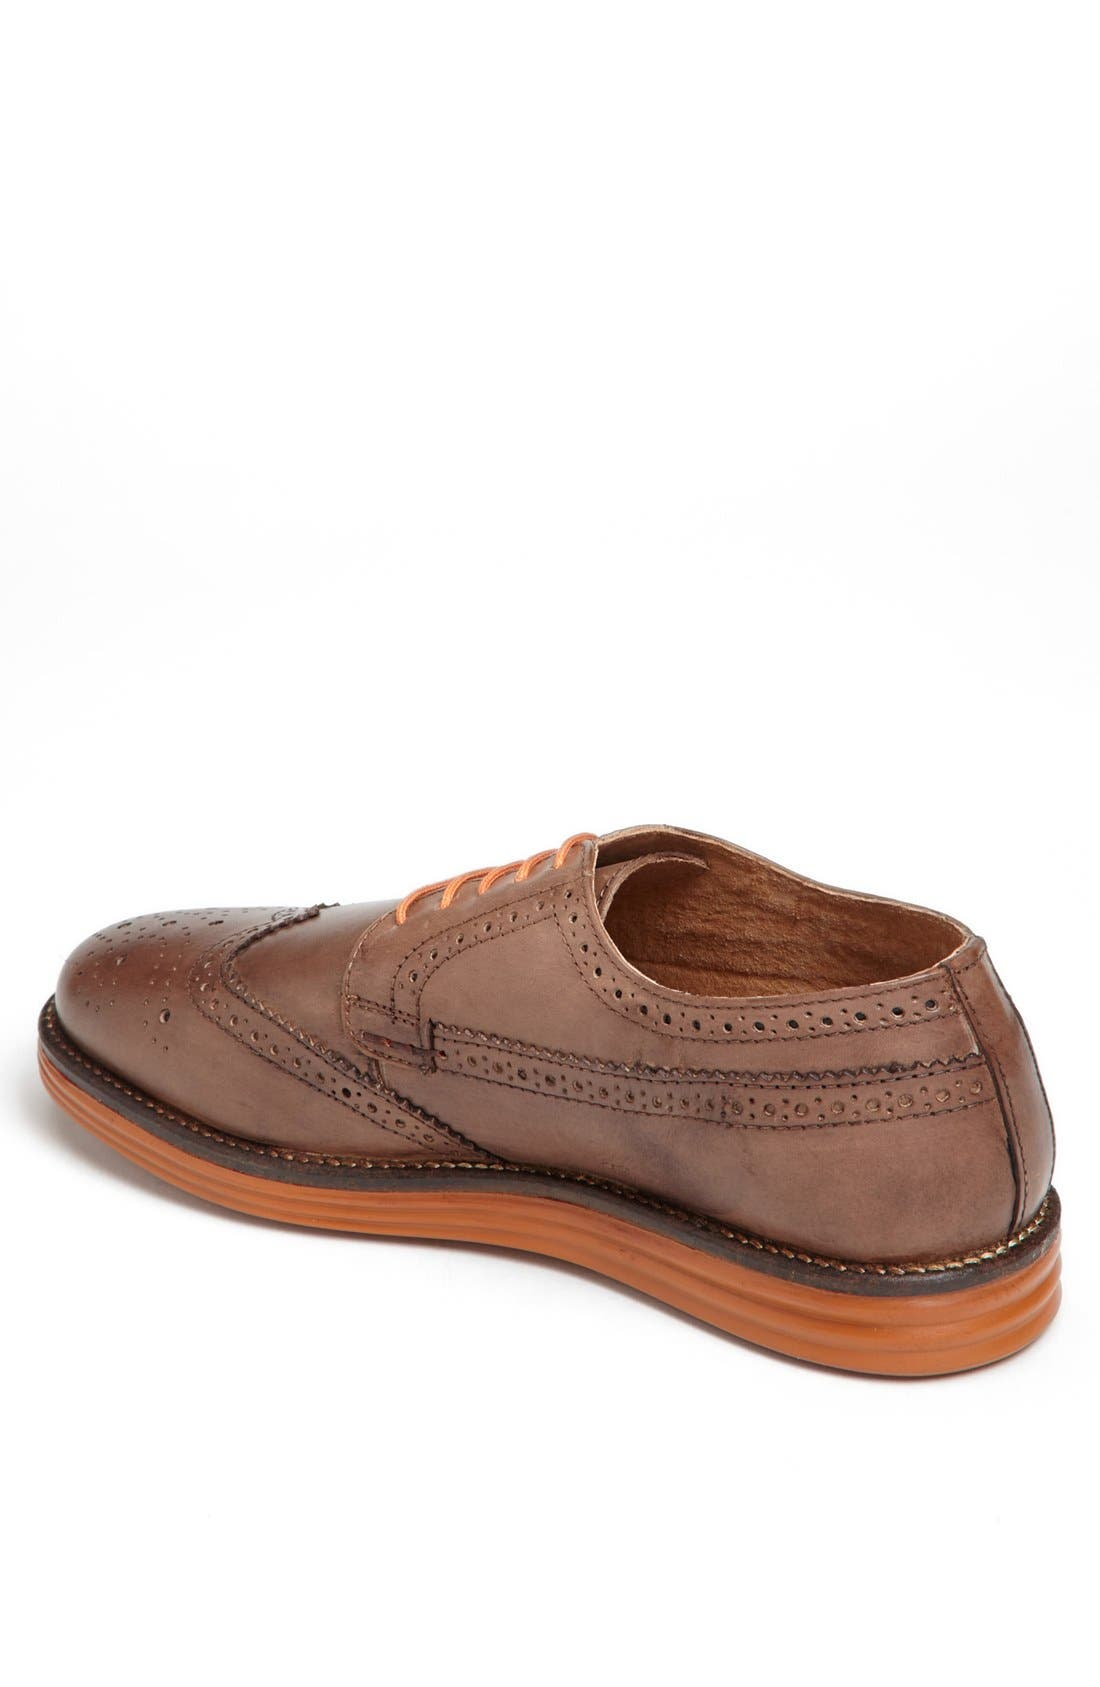 Alternate Image 2  - Ben Sherman 'Zito' Wingtip (Men)